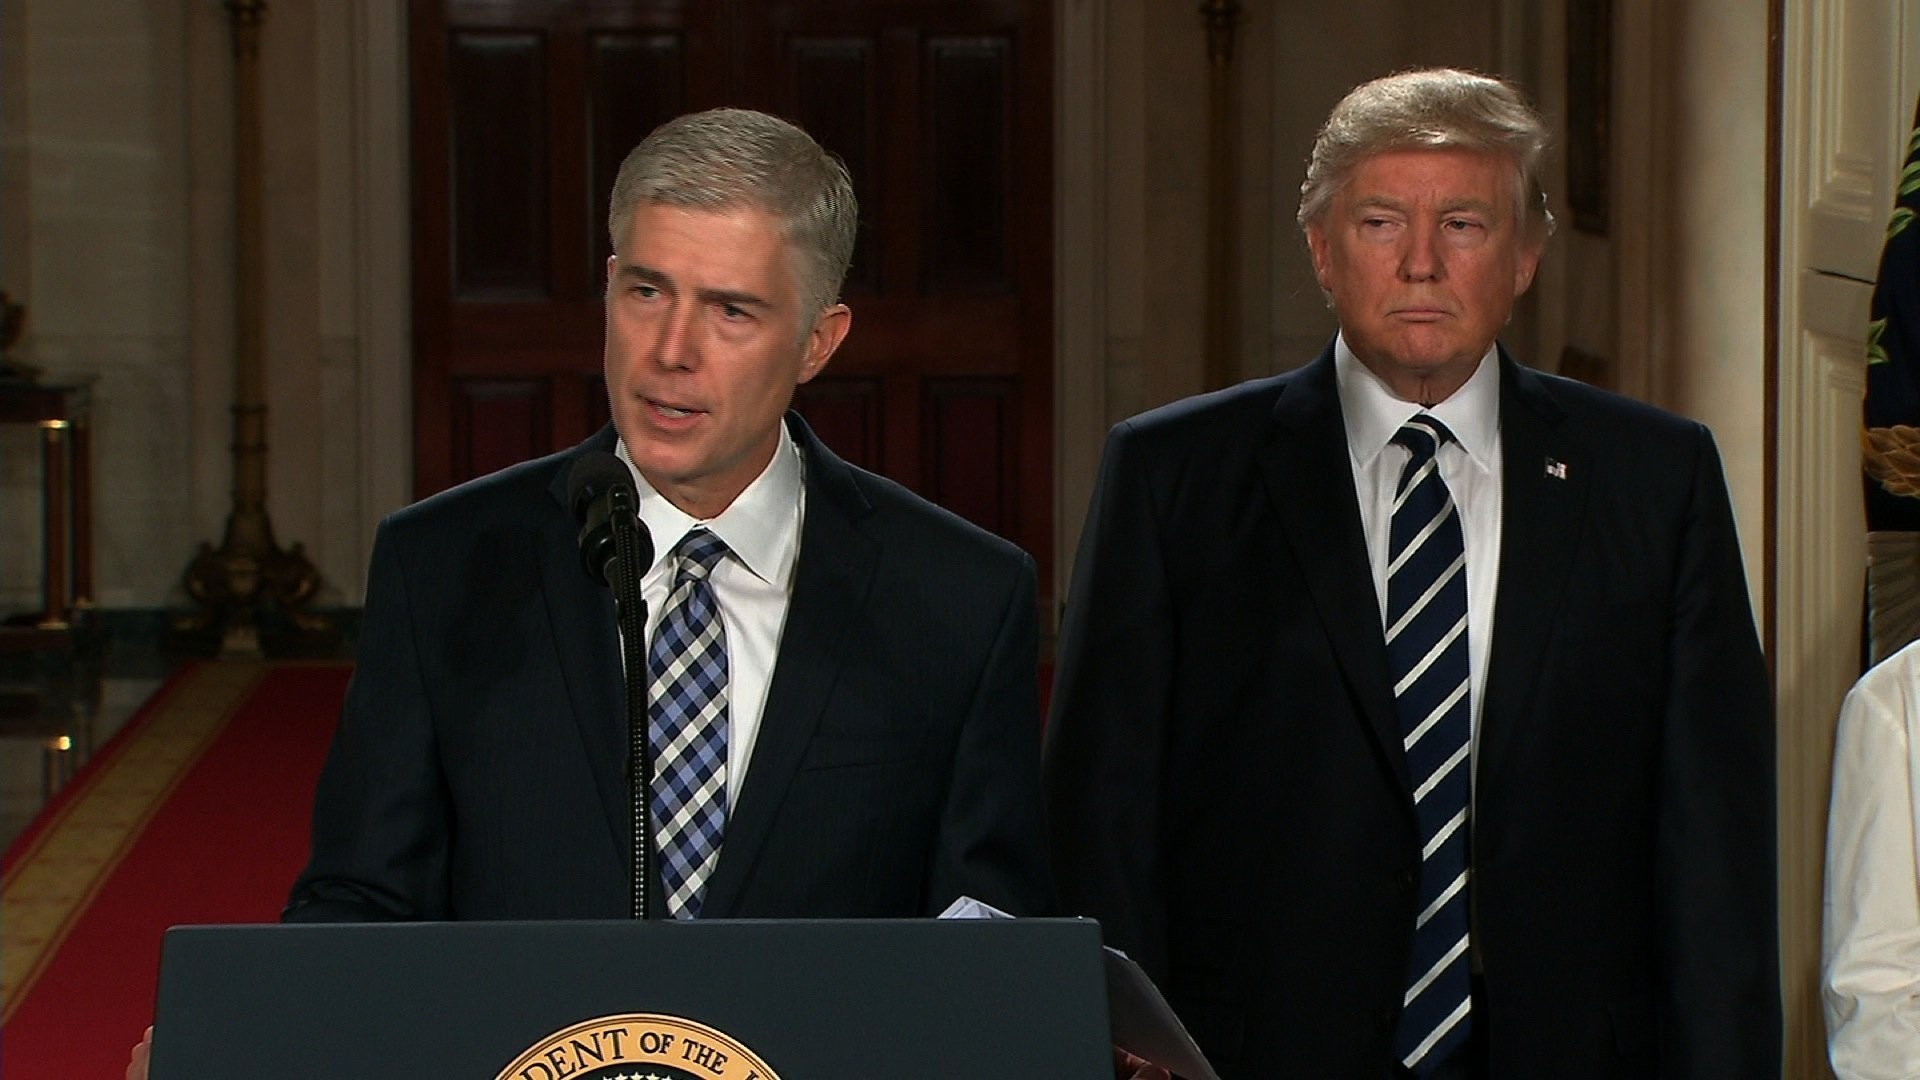 WaPo: Trump Mulled Reversing Gorsuch Nomination Over Concerns About Loyalty